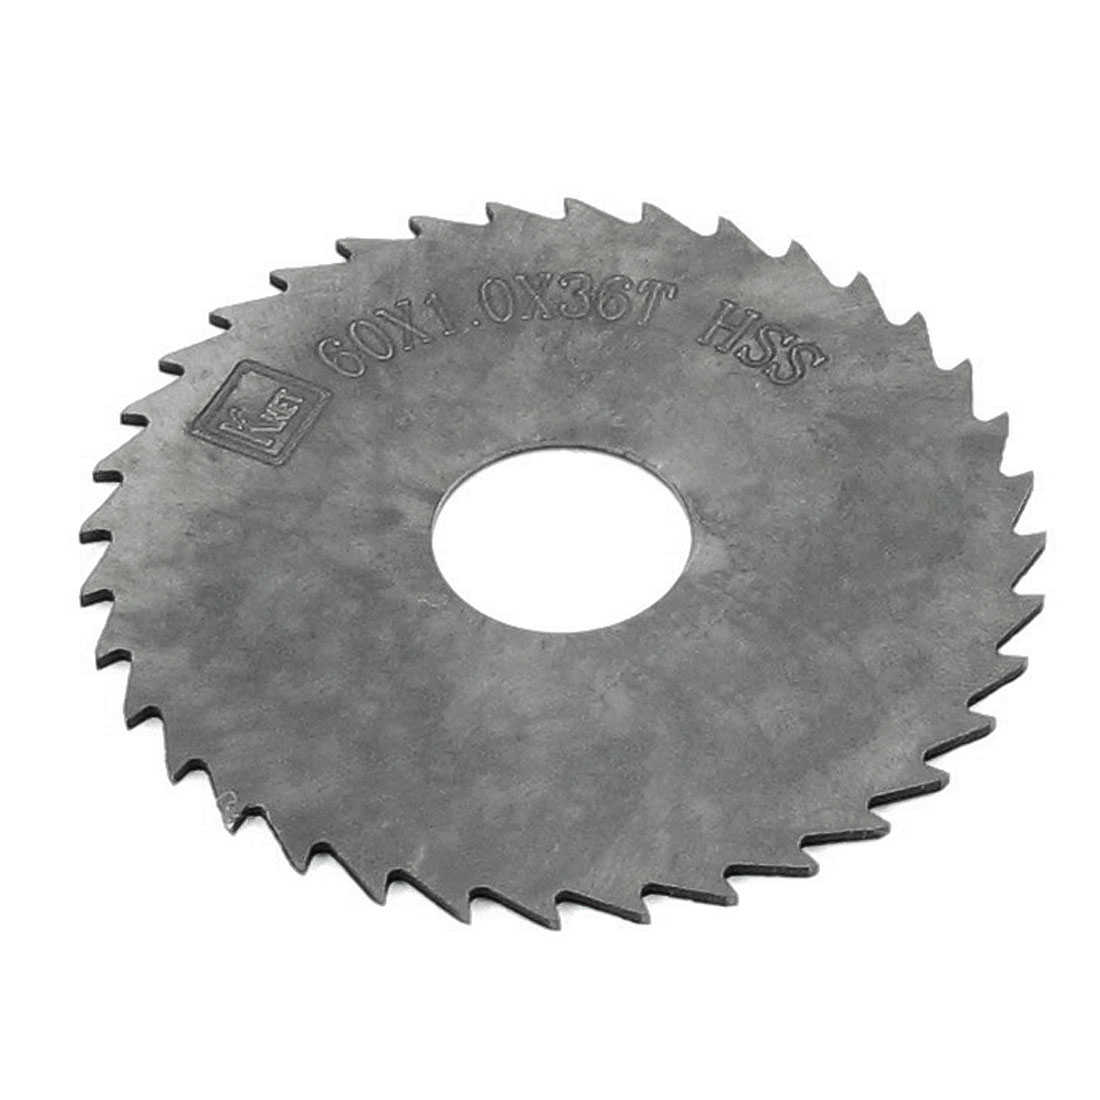 60mm x 1mm x 16mm Milling Cutter HSS 36 Teeth Slitting Saw Blade Black